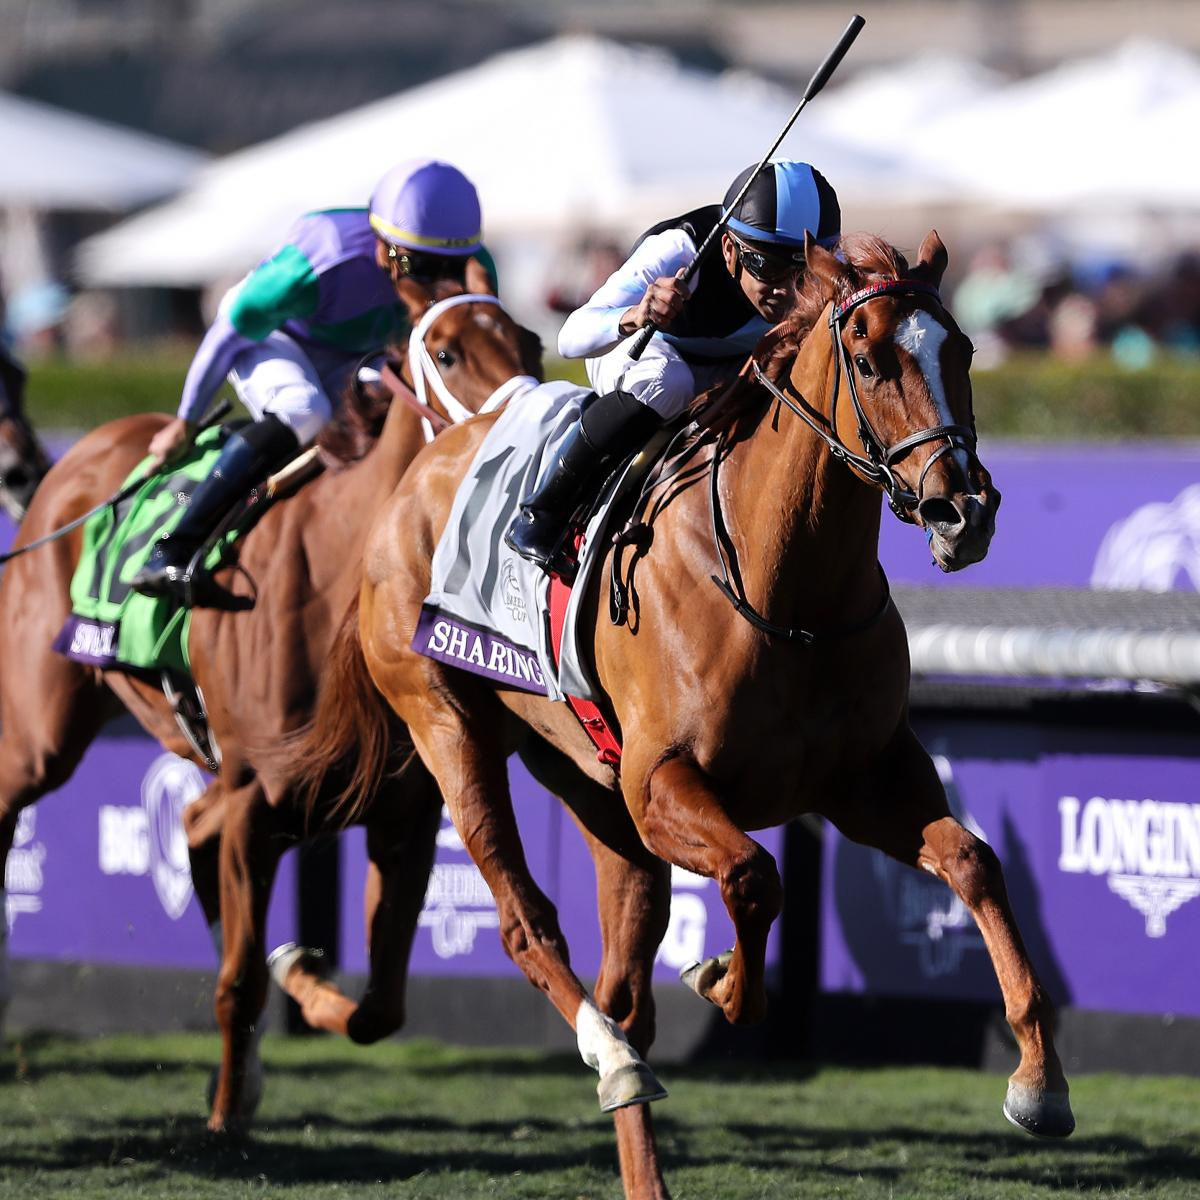 Breeders Cup 2019 Payouts Prize Money Purse Info For All